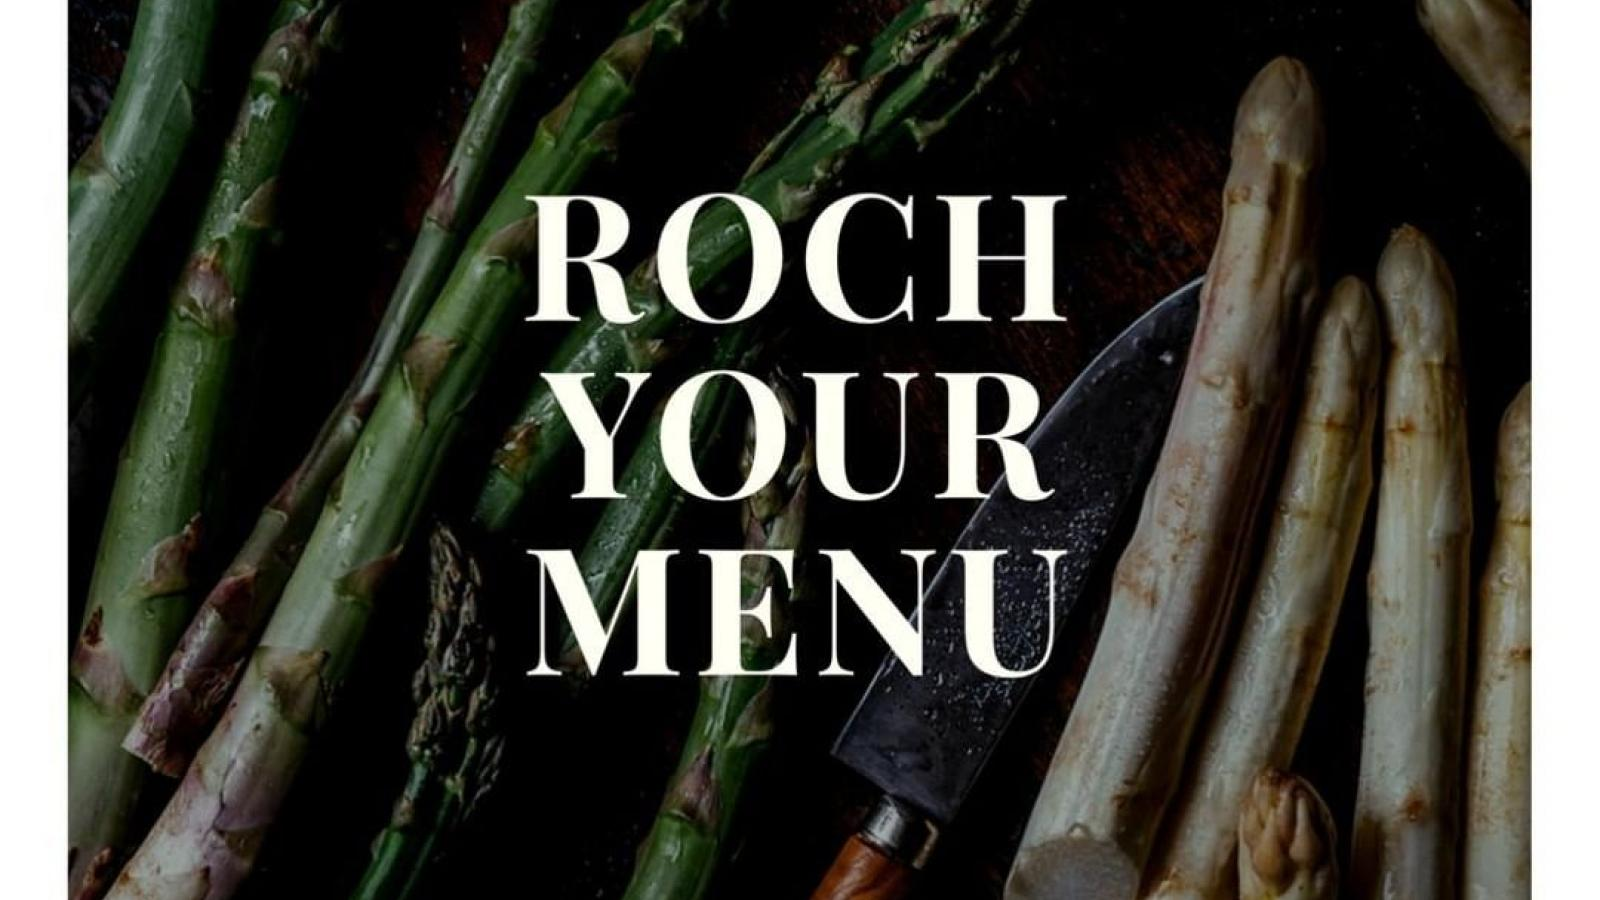 Roch your menu!